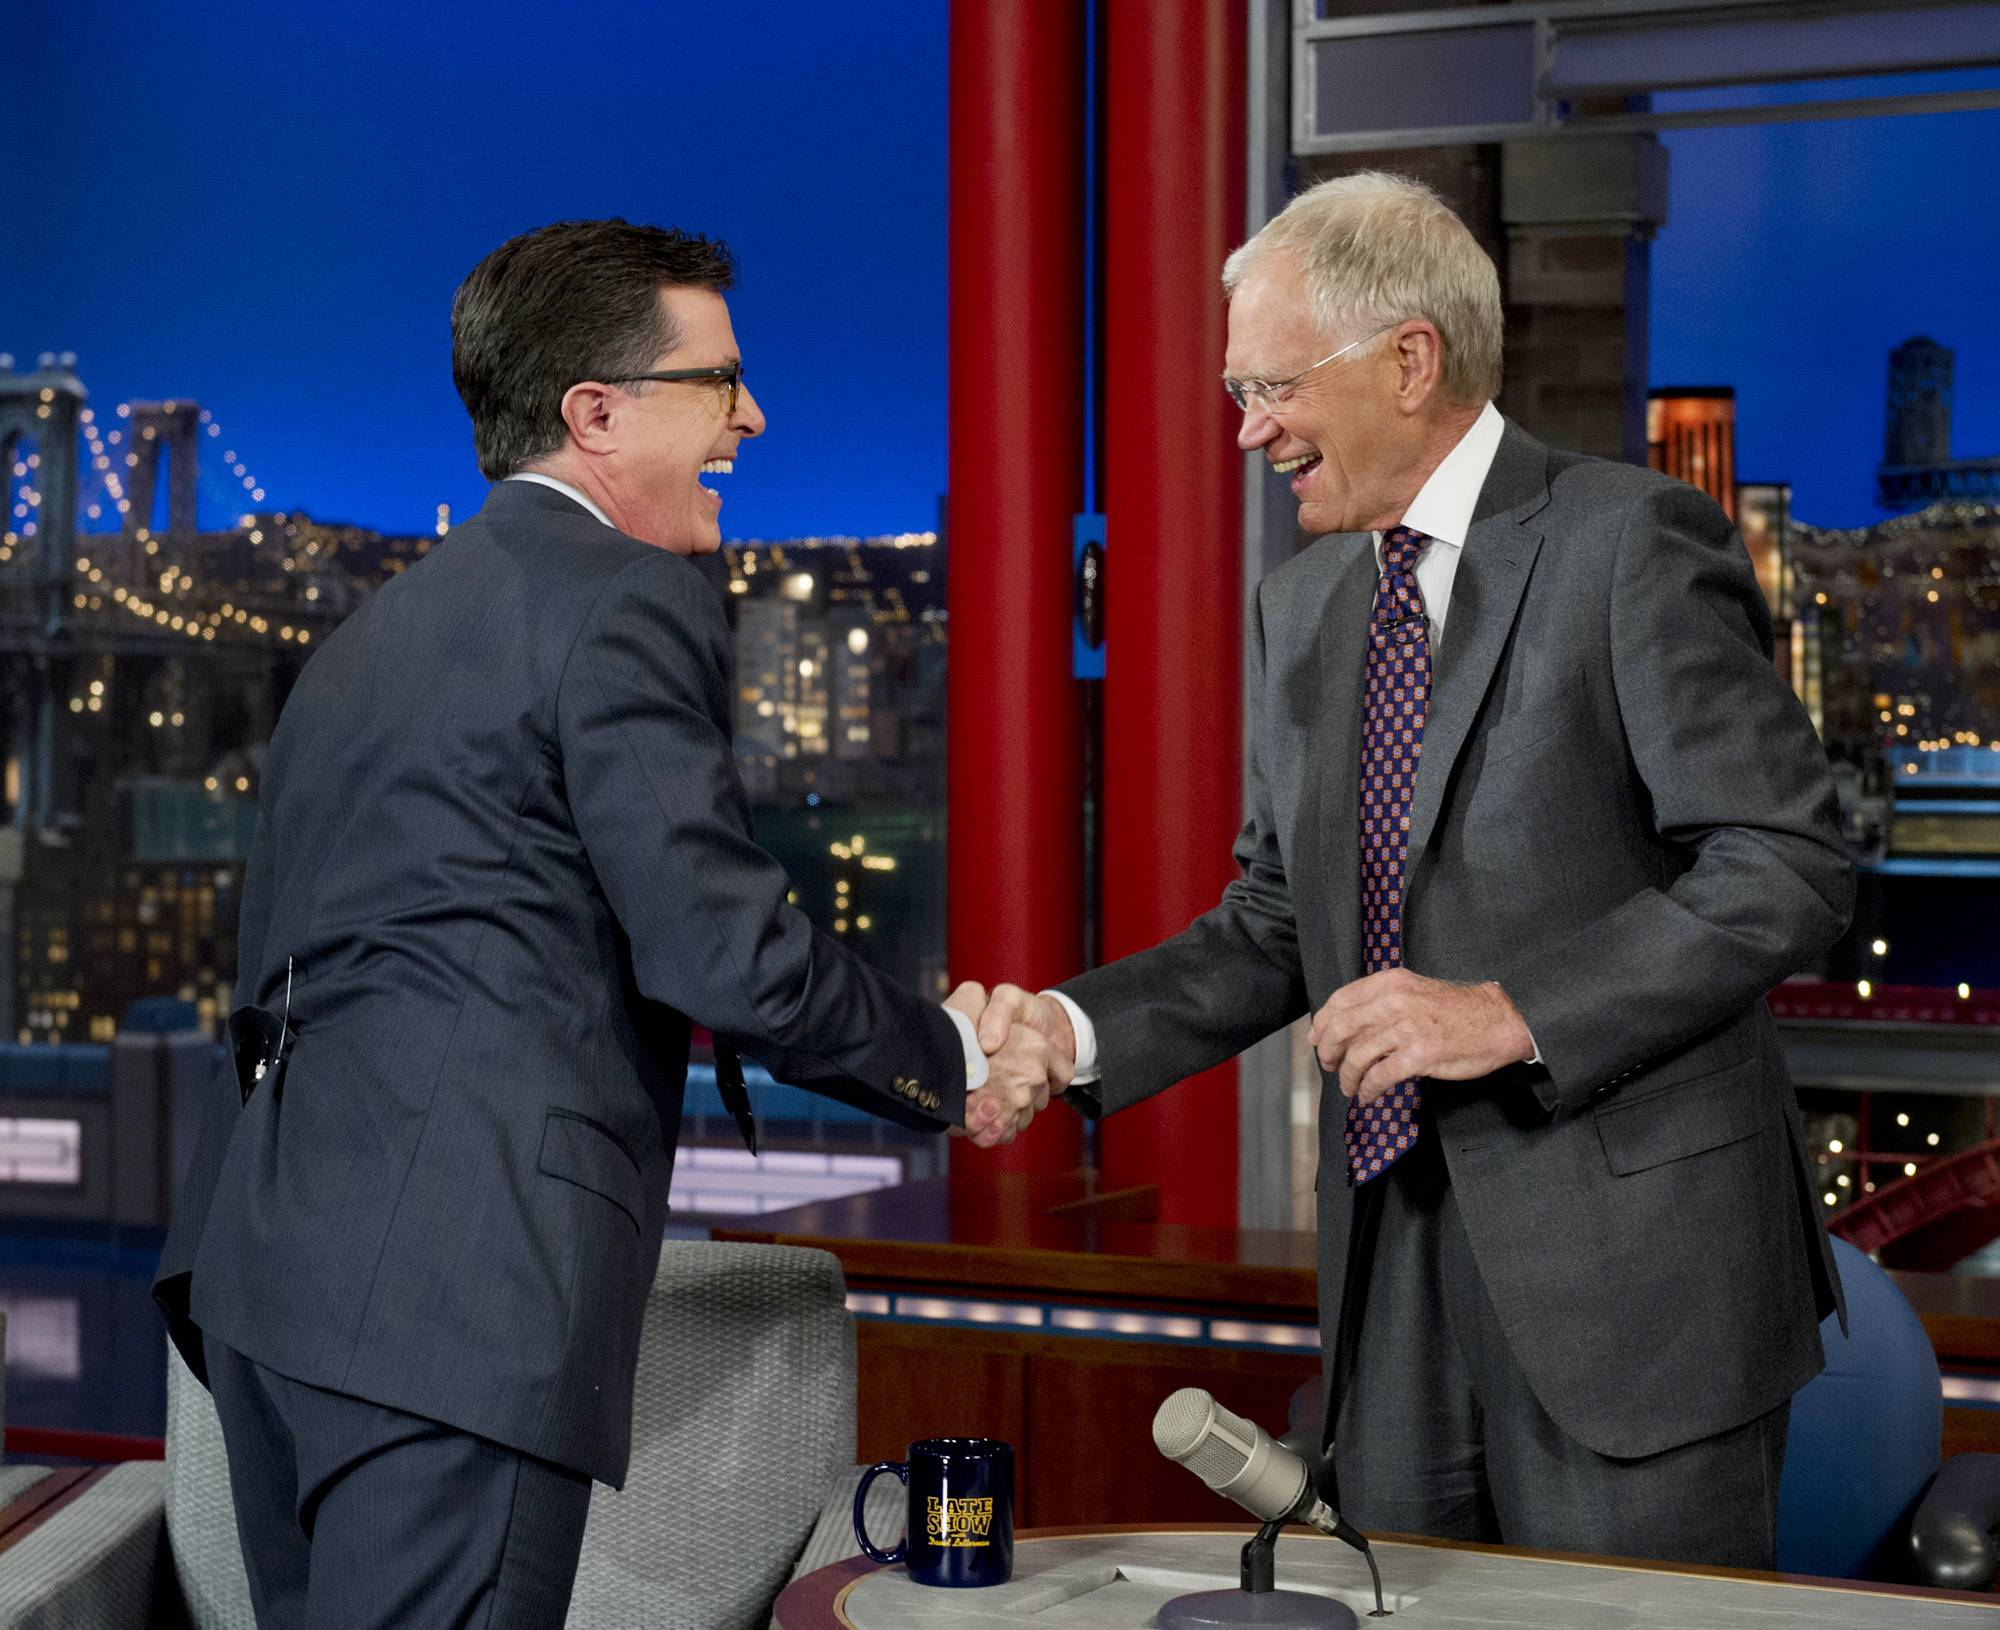 The late-night transition from David Letterman to Stephen Colbert and from Craig Ferguson to a yet-to-be-named host remains undecided, CBS Entertainment chief Nina Tassler said Thursday, July 17, 2014.